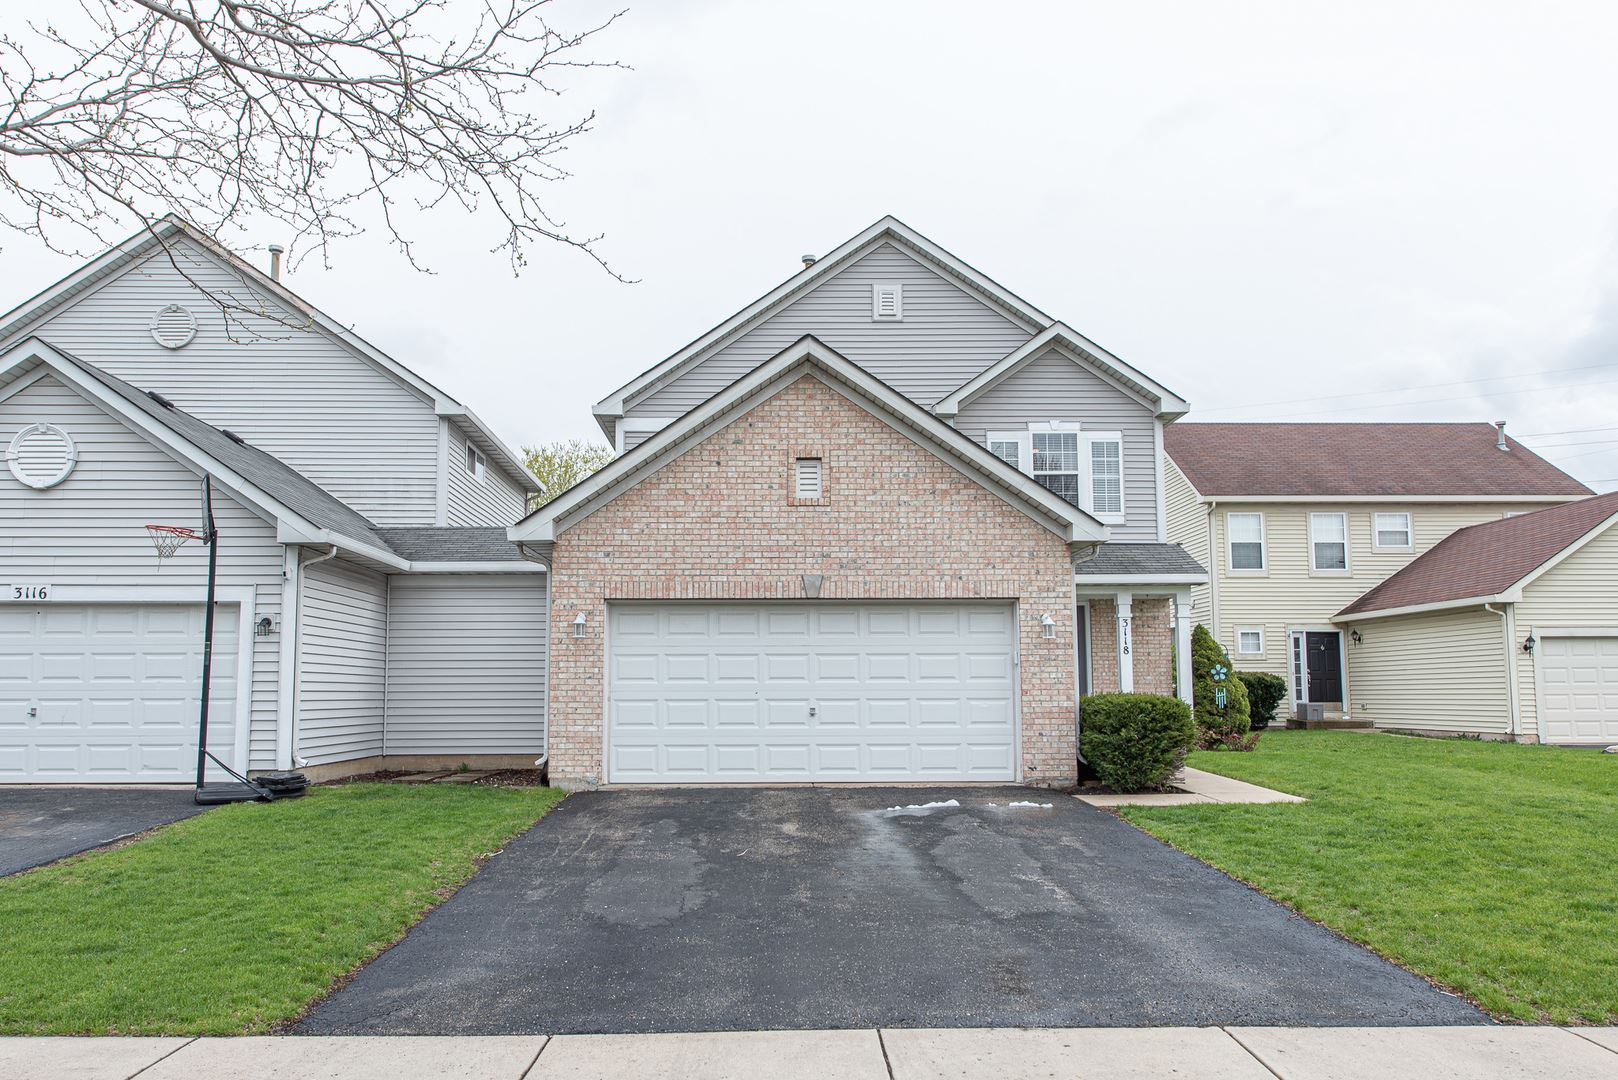 Photo of 3118 Hillary Court, Joliet, IL 60435 (MLS # 11062159)